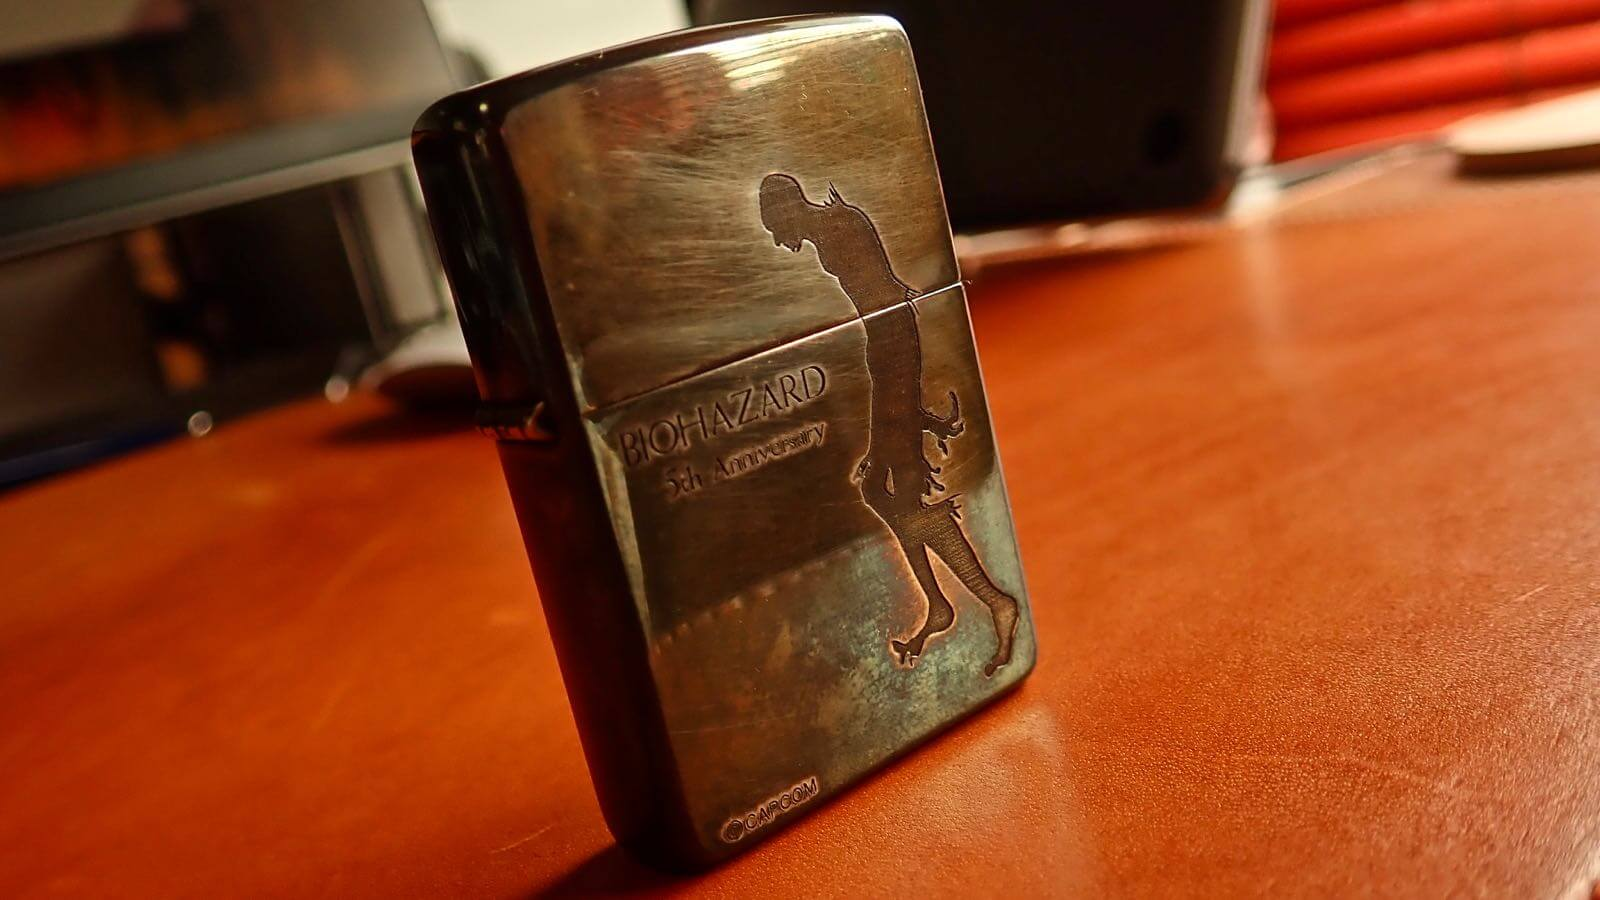 0012 Baiohazad 5th anniversary zippo collaboration 04